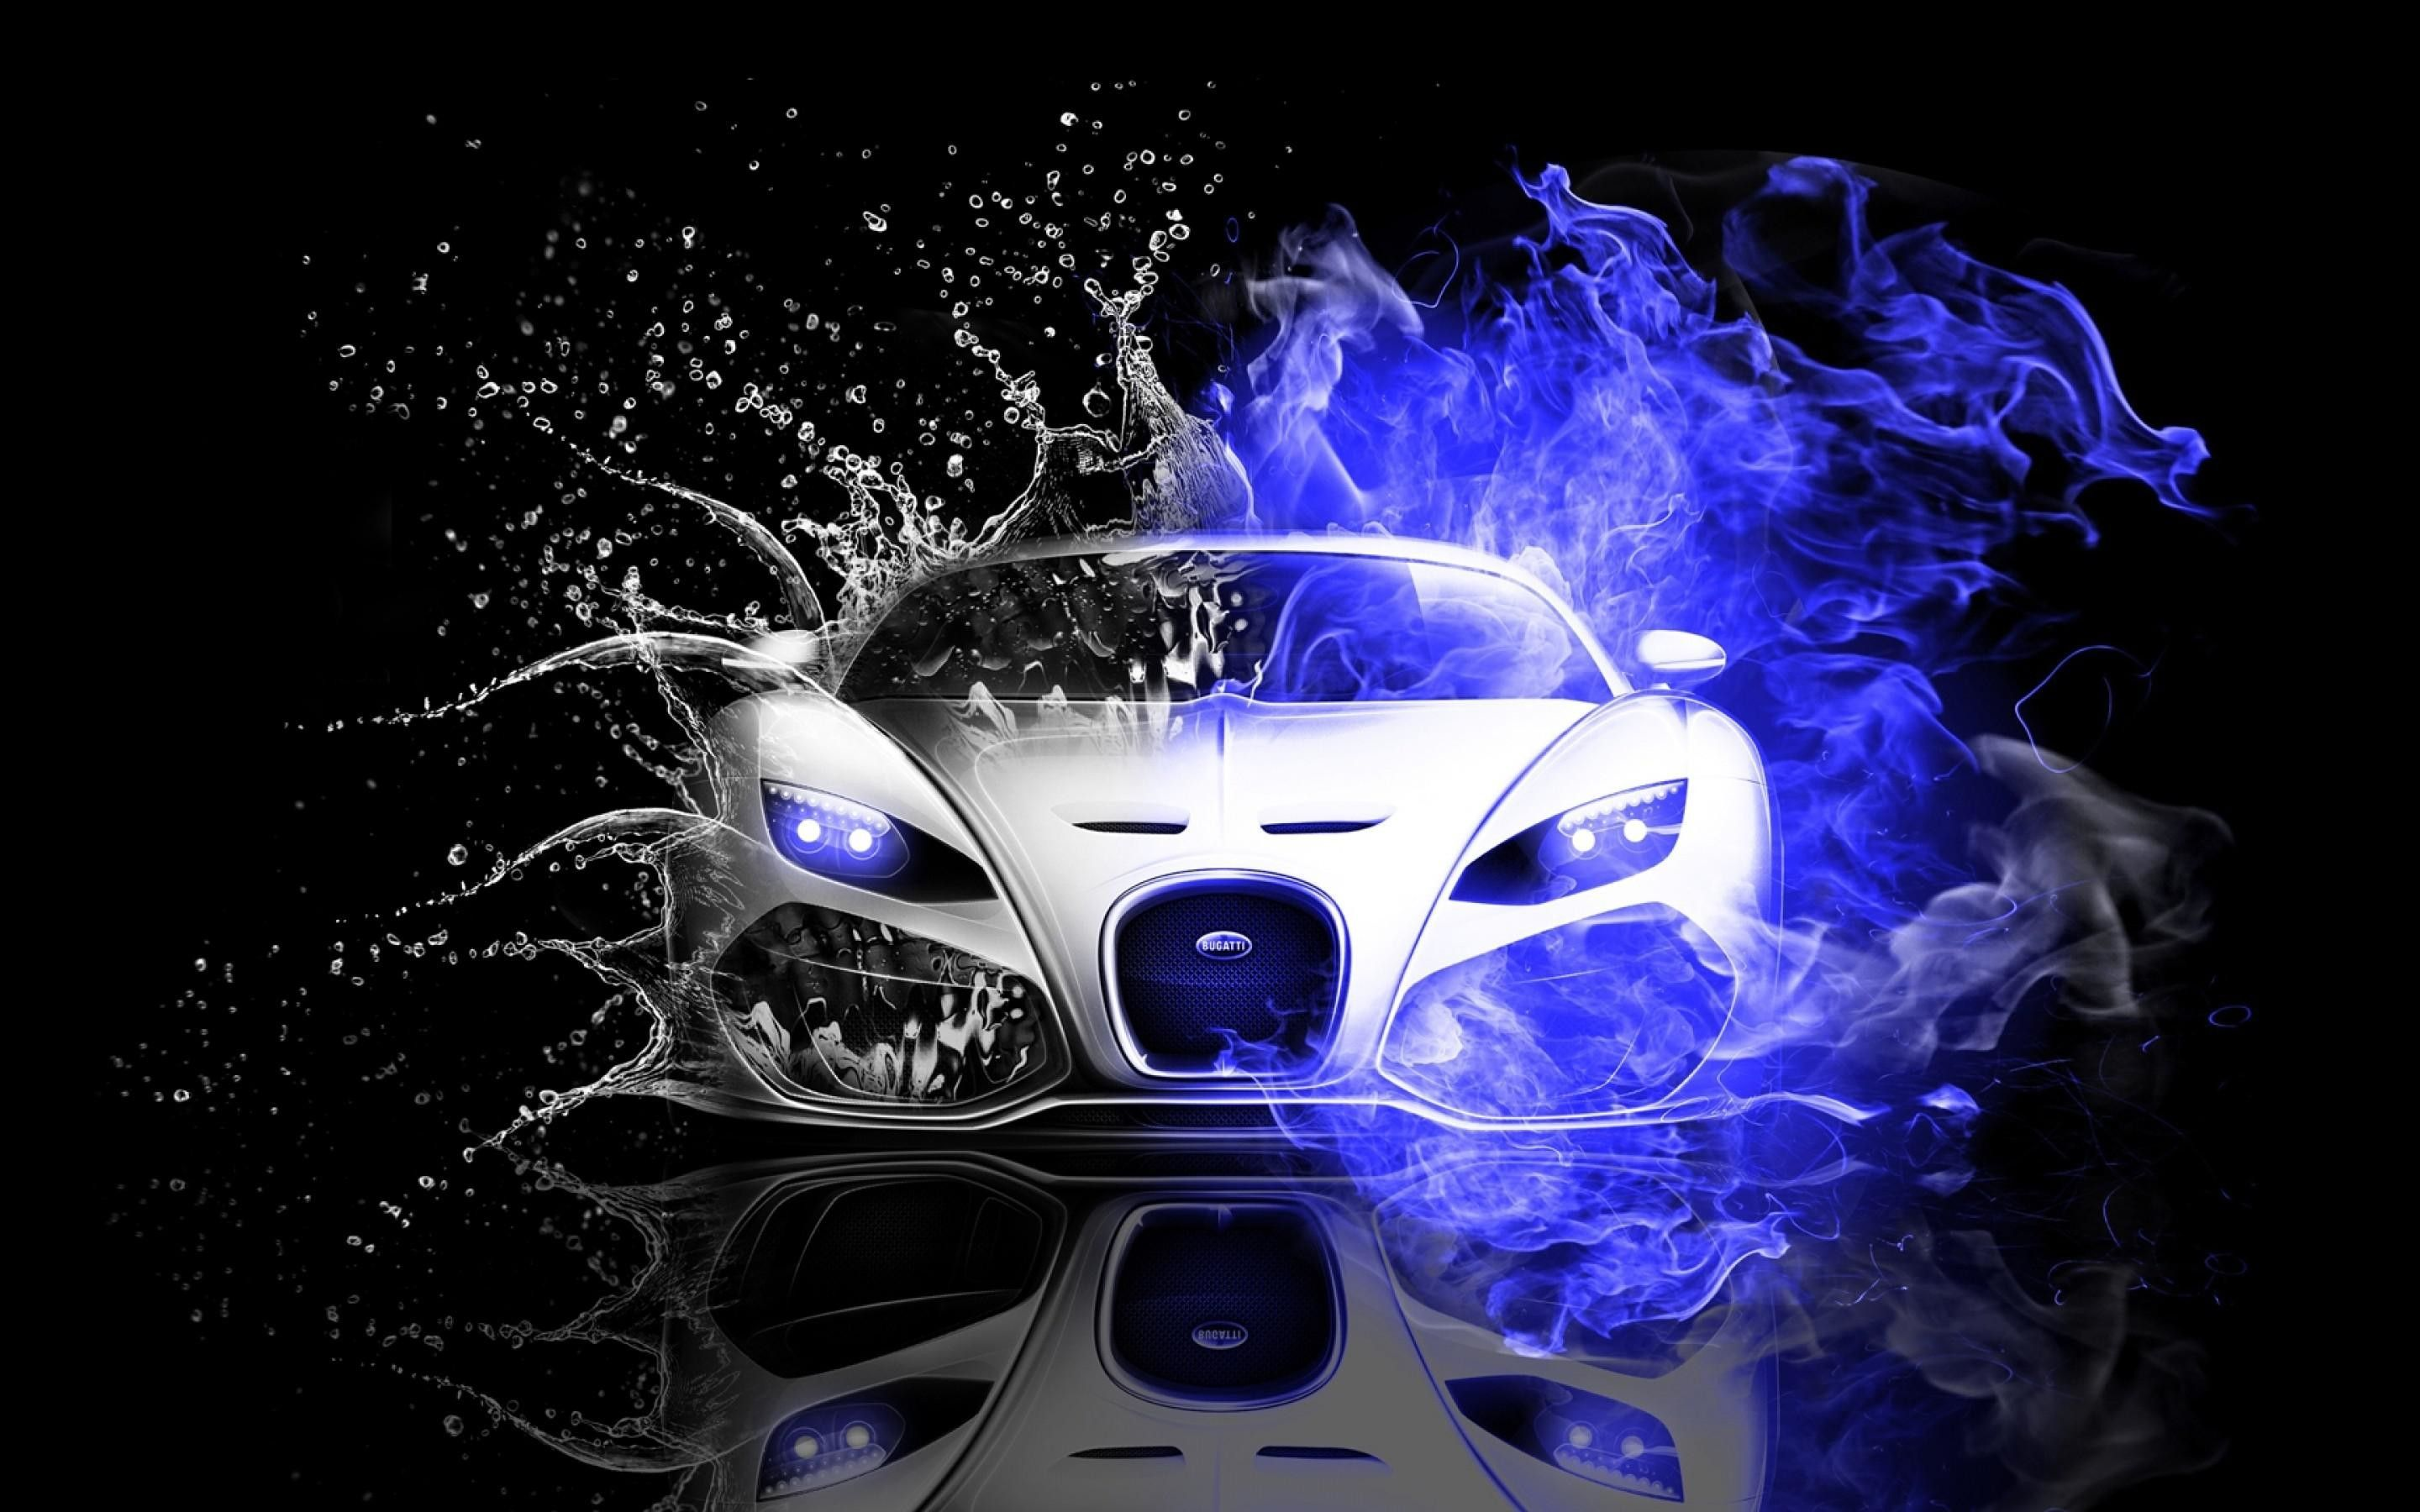 68 Blue Car Wallpapers On Wallpaperplay Sports Car Wallpaper